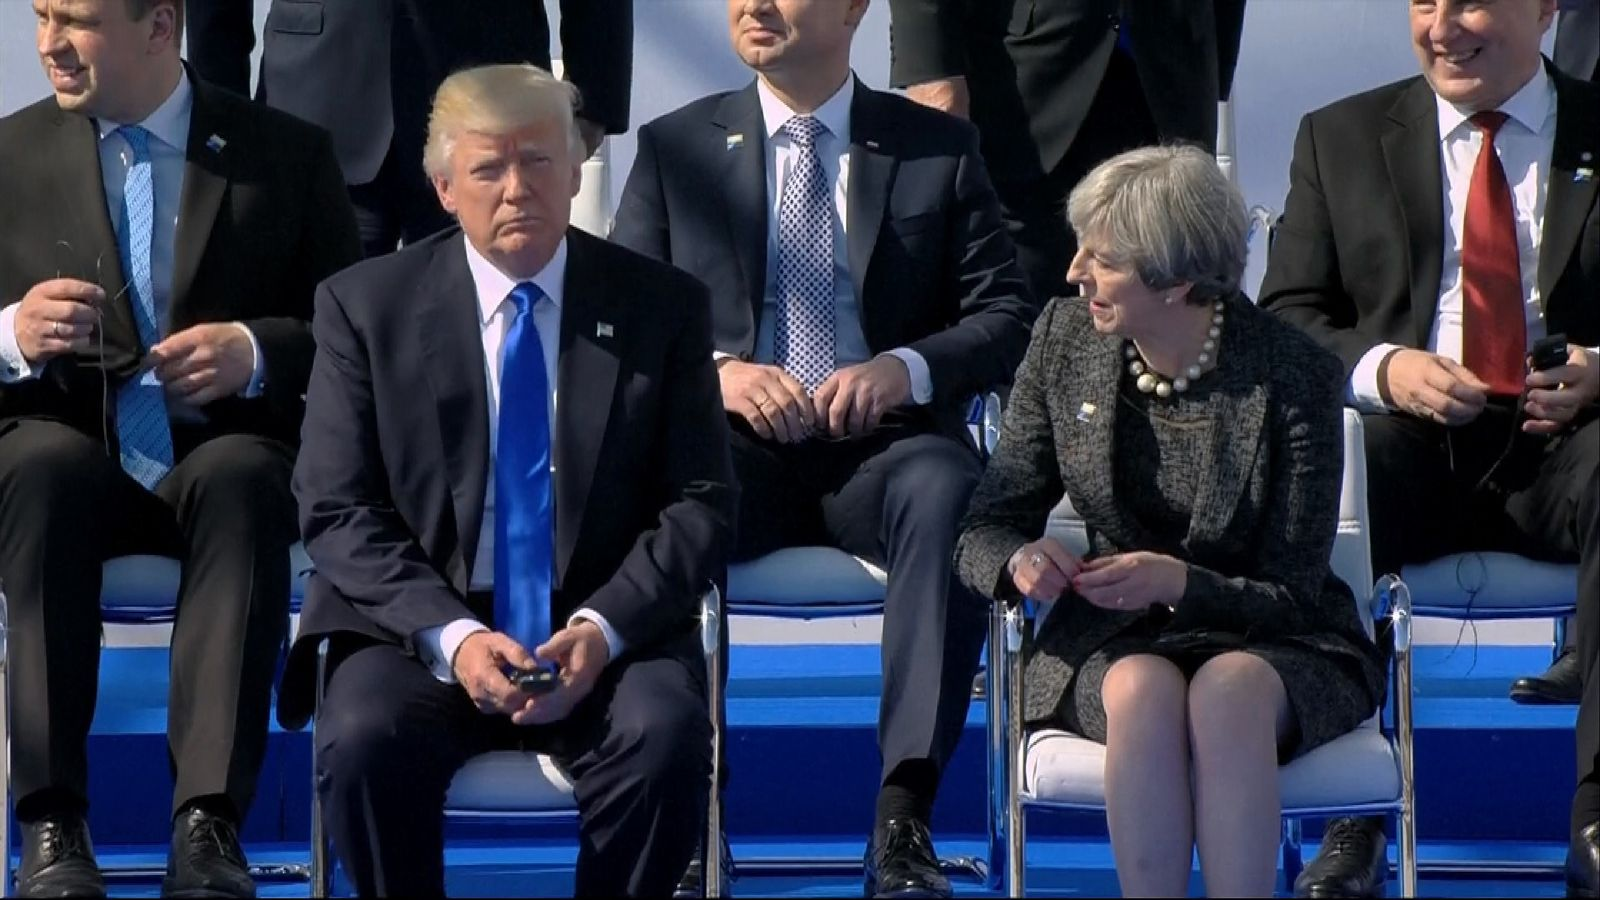 Intelligence shared with United States must remain secure, May to tell Trump